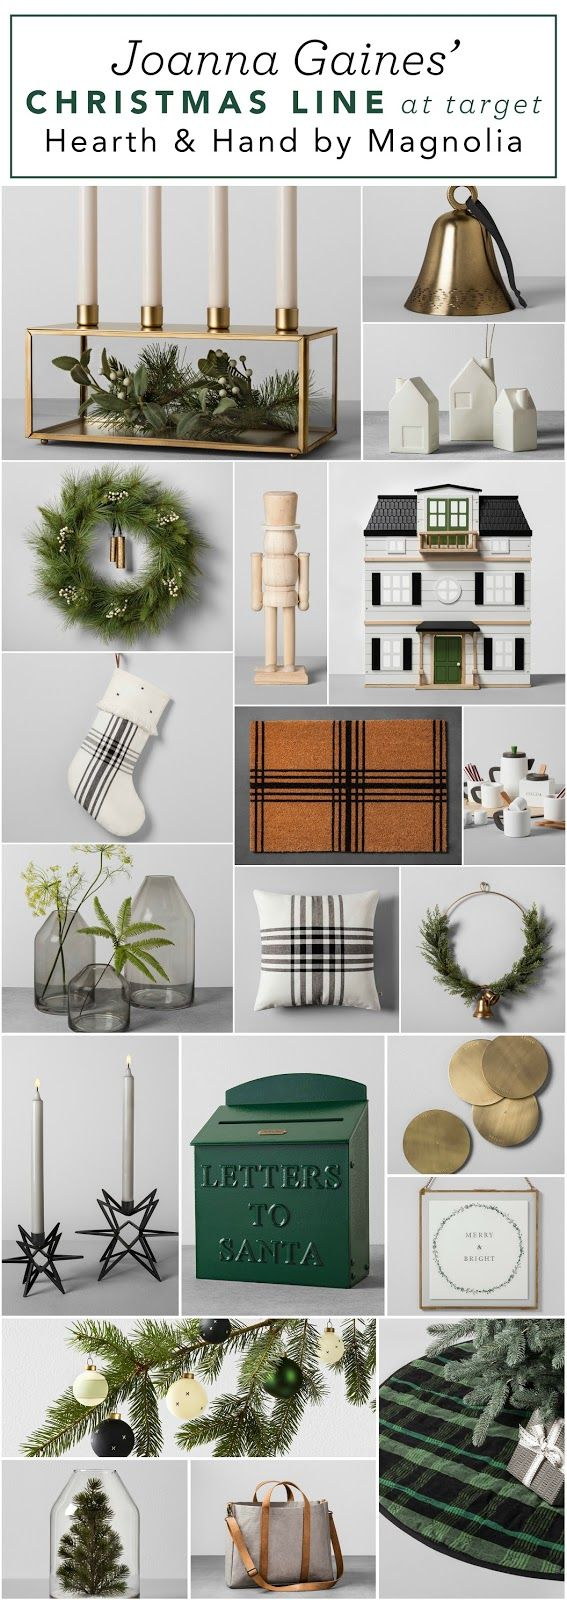 It's Here! Hearth and Hand by Magnolia at Target